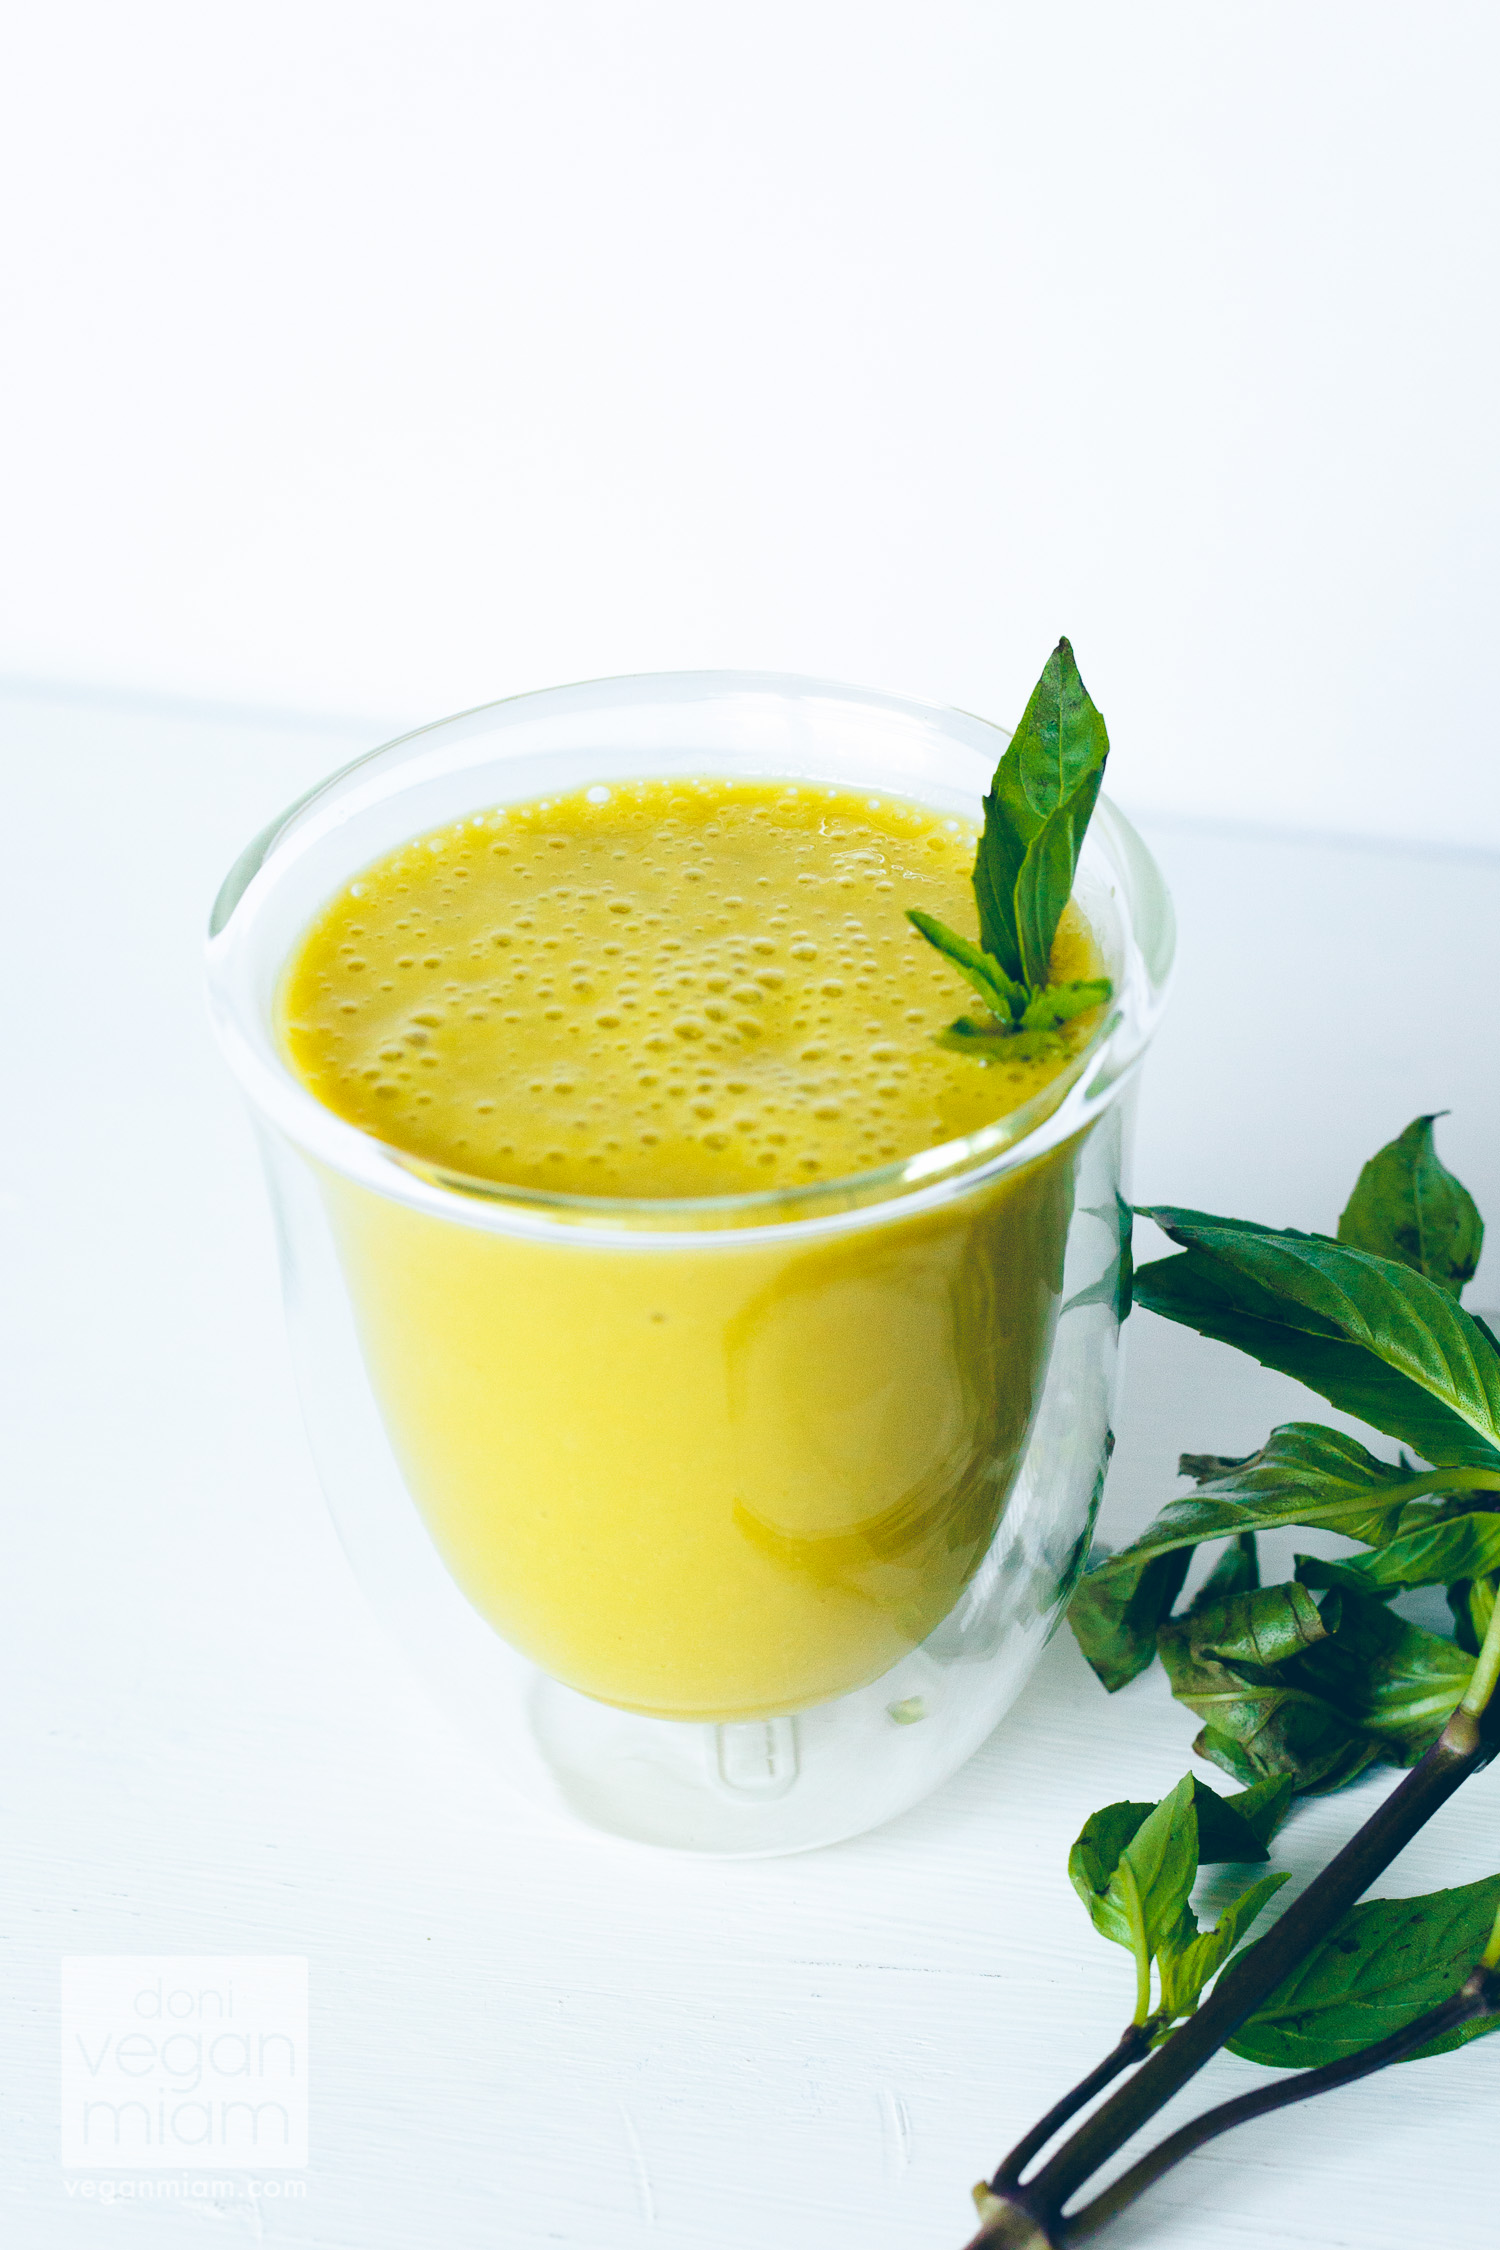 Mango & Thai Basil Smoothie